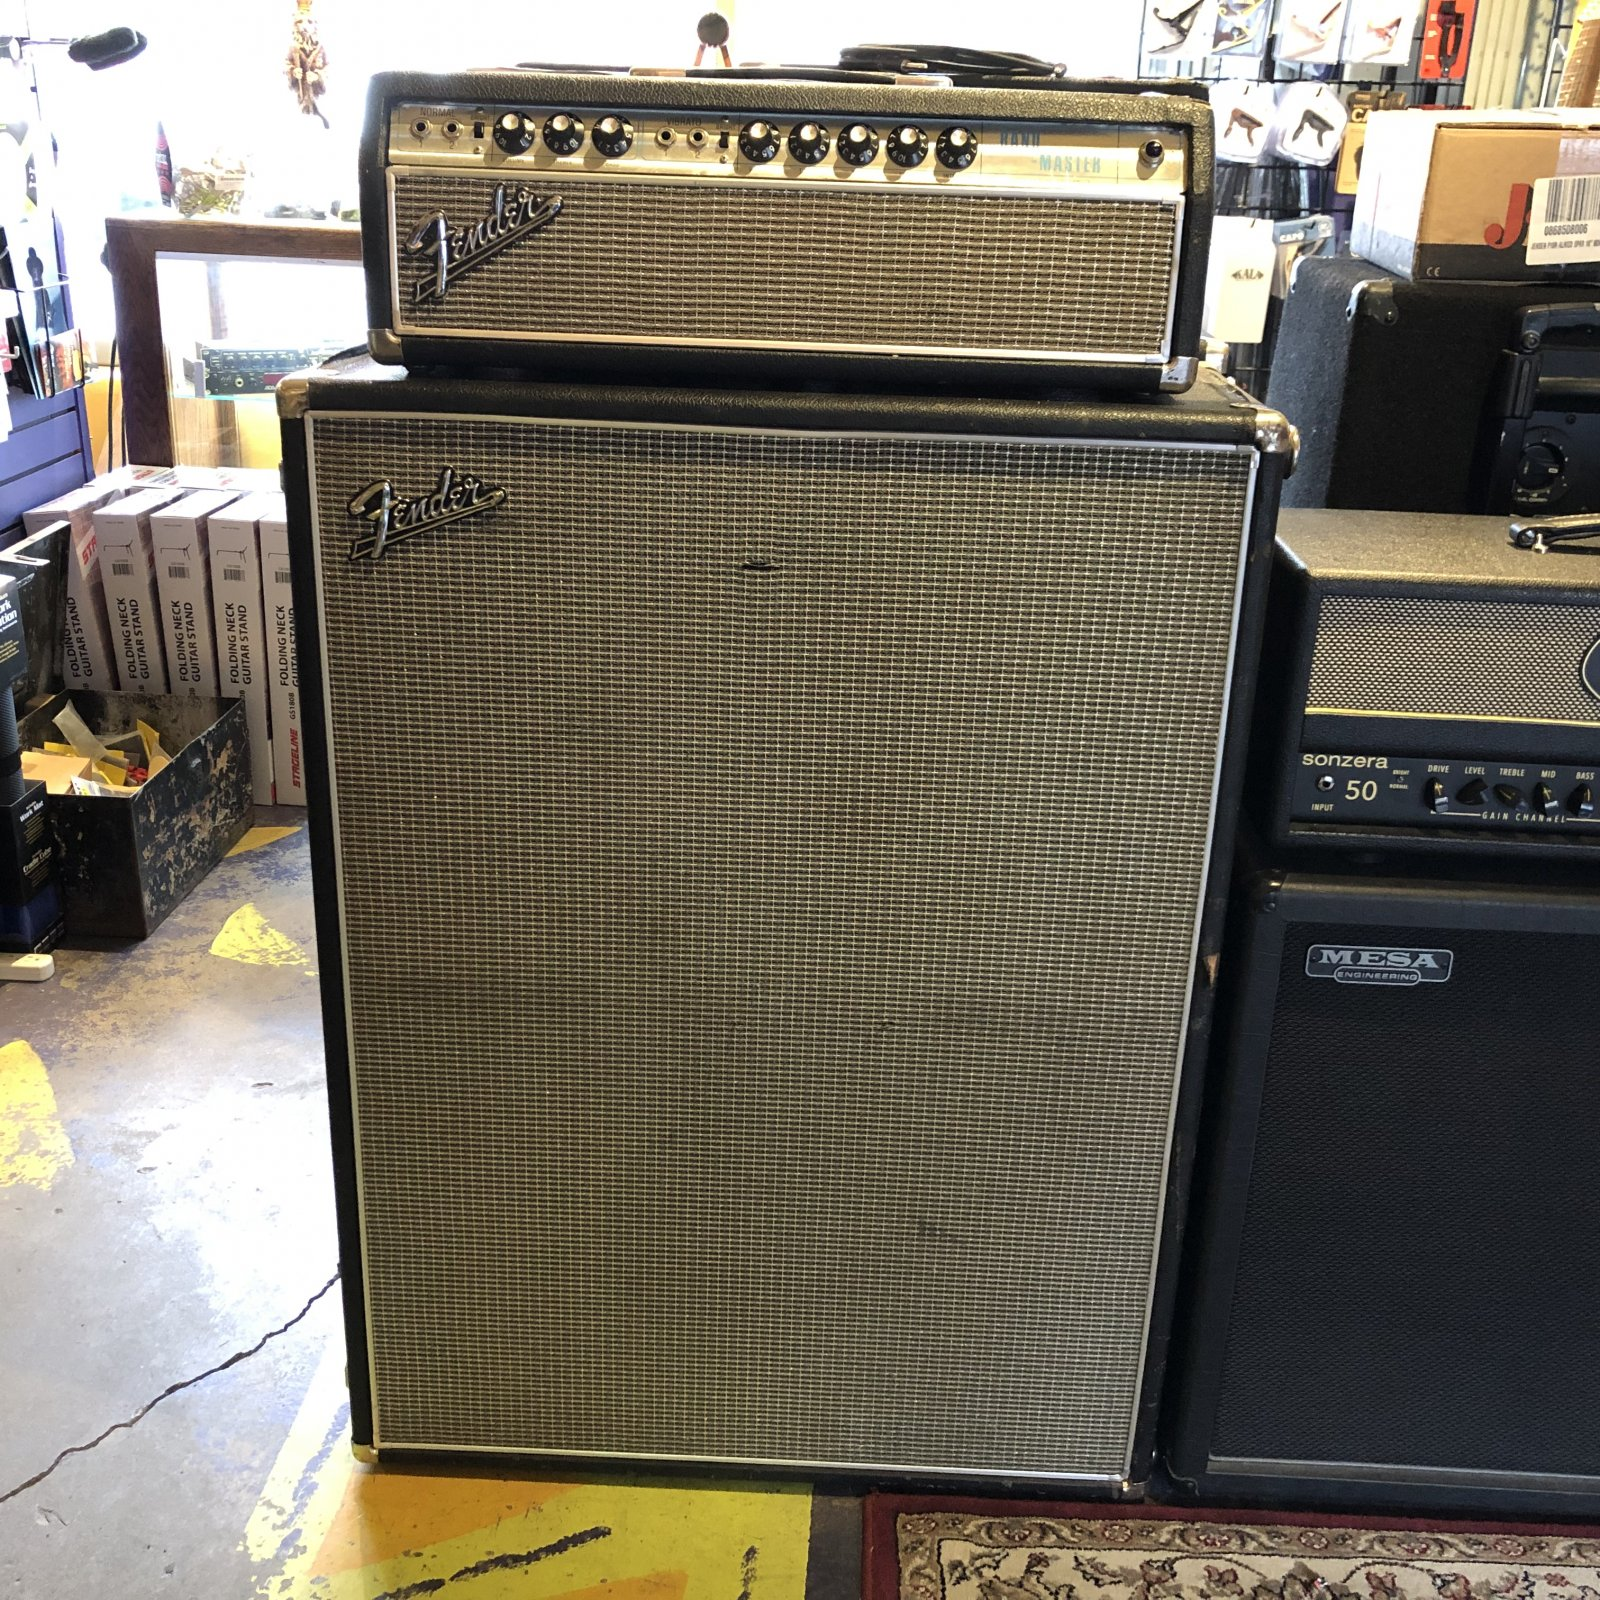 Used Fender Silverface Band Master w/2x12 cab